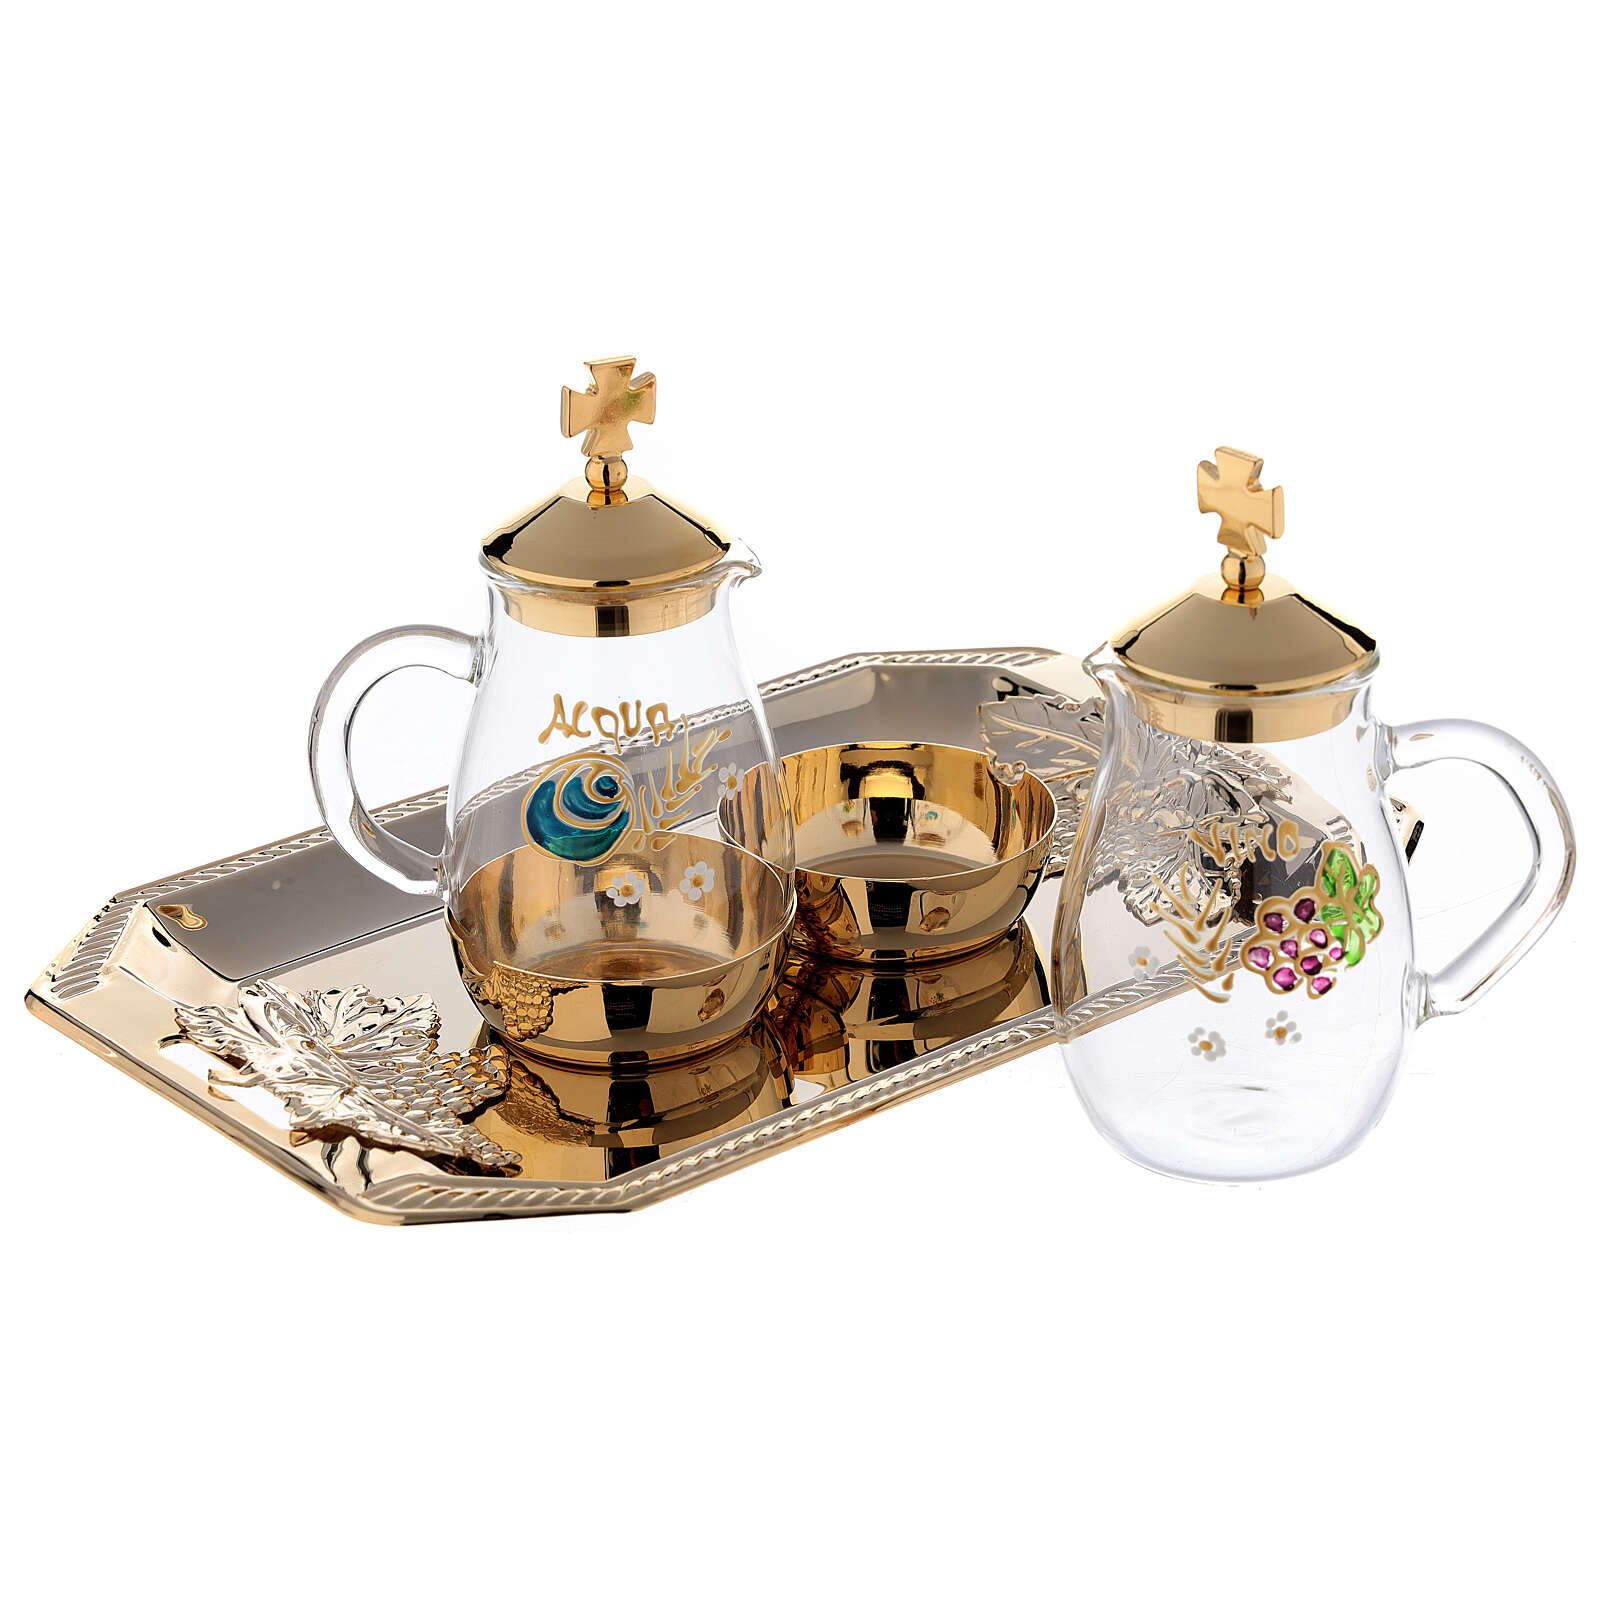 Como hand painted cruet set 160 ml with rectangular brass tray 4